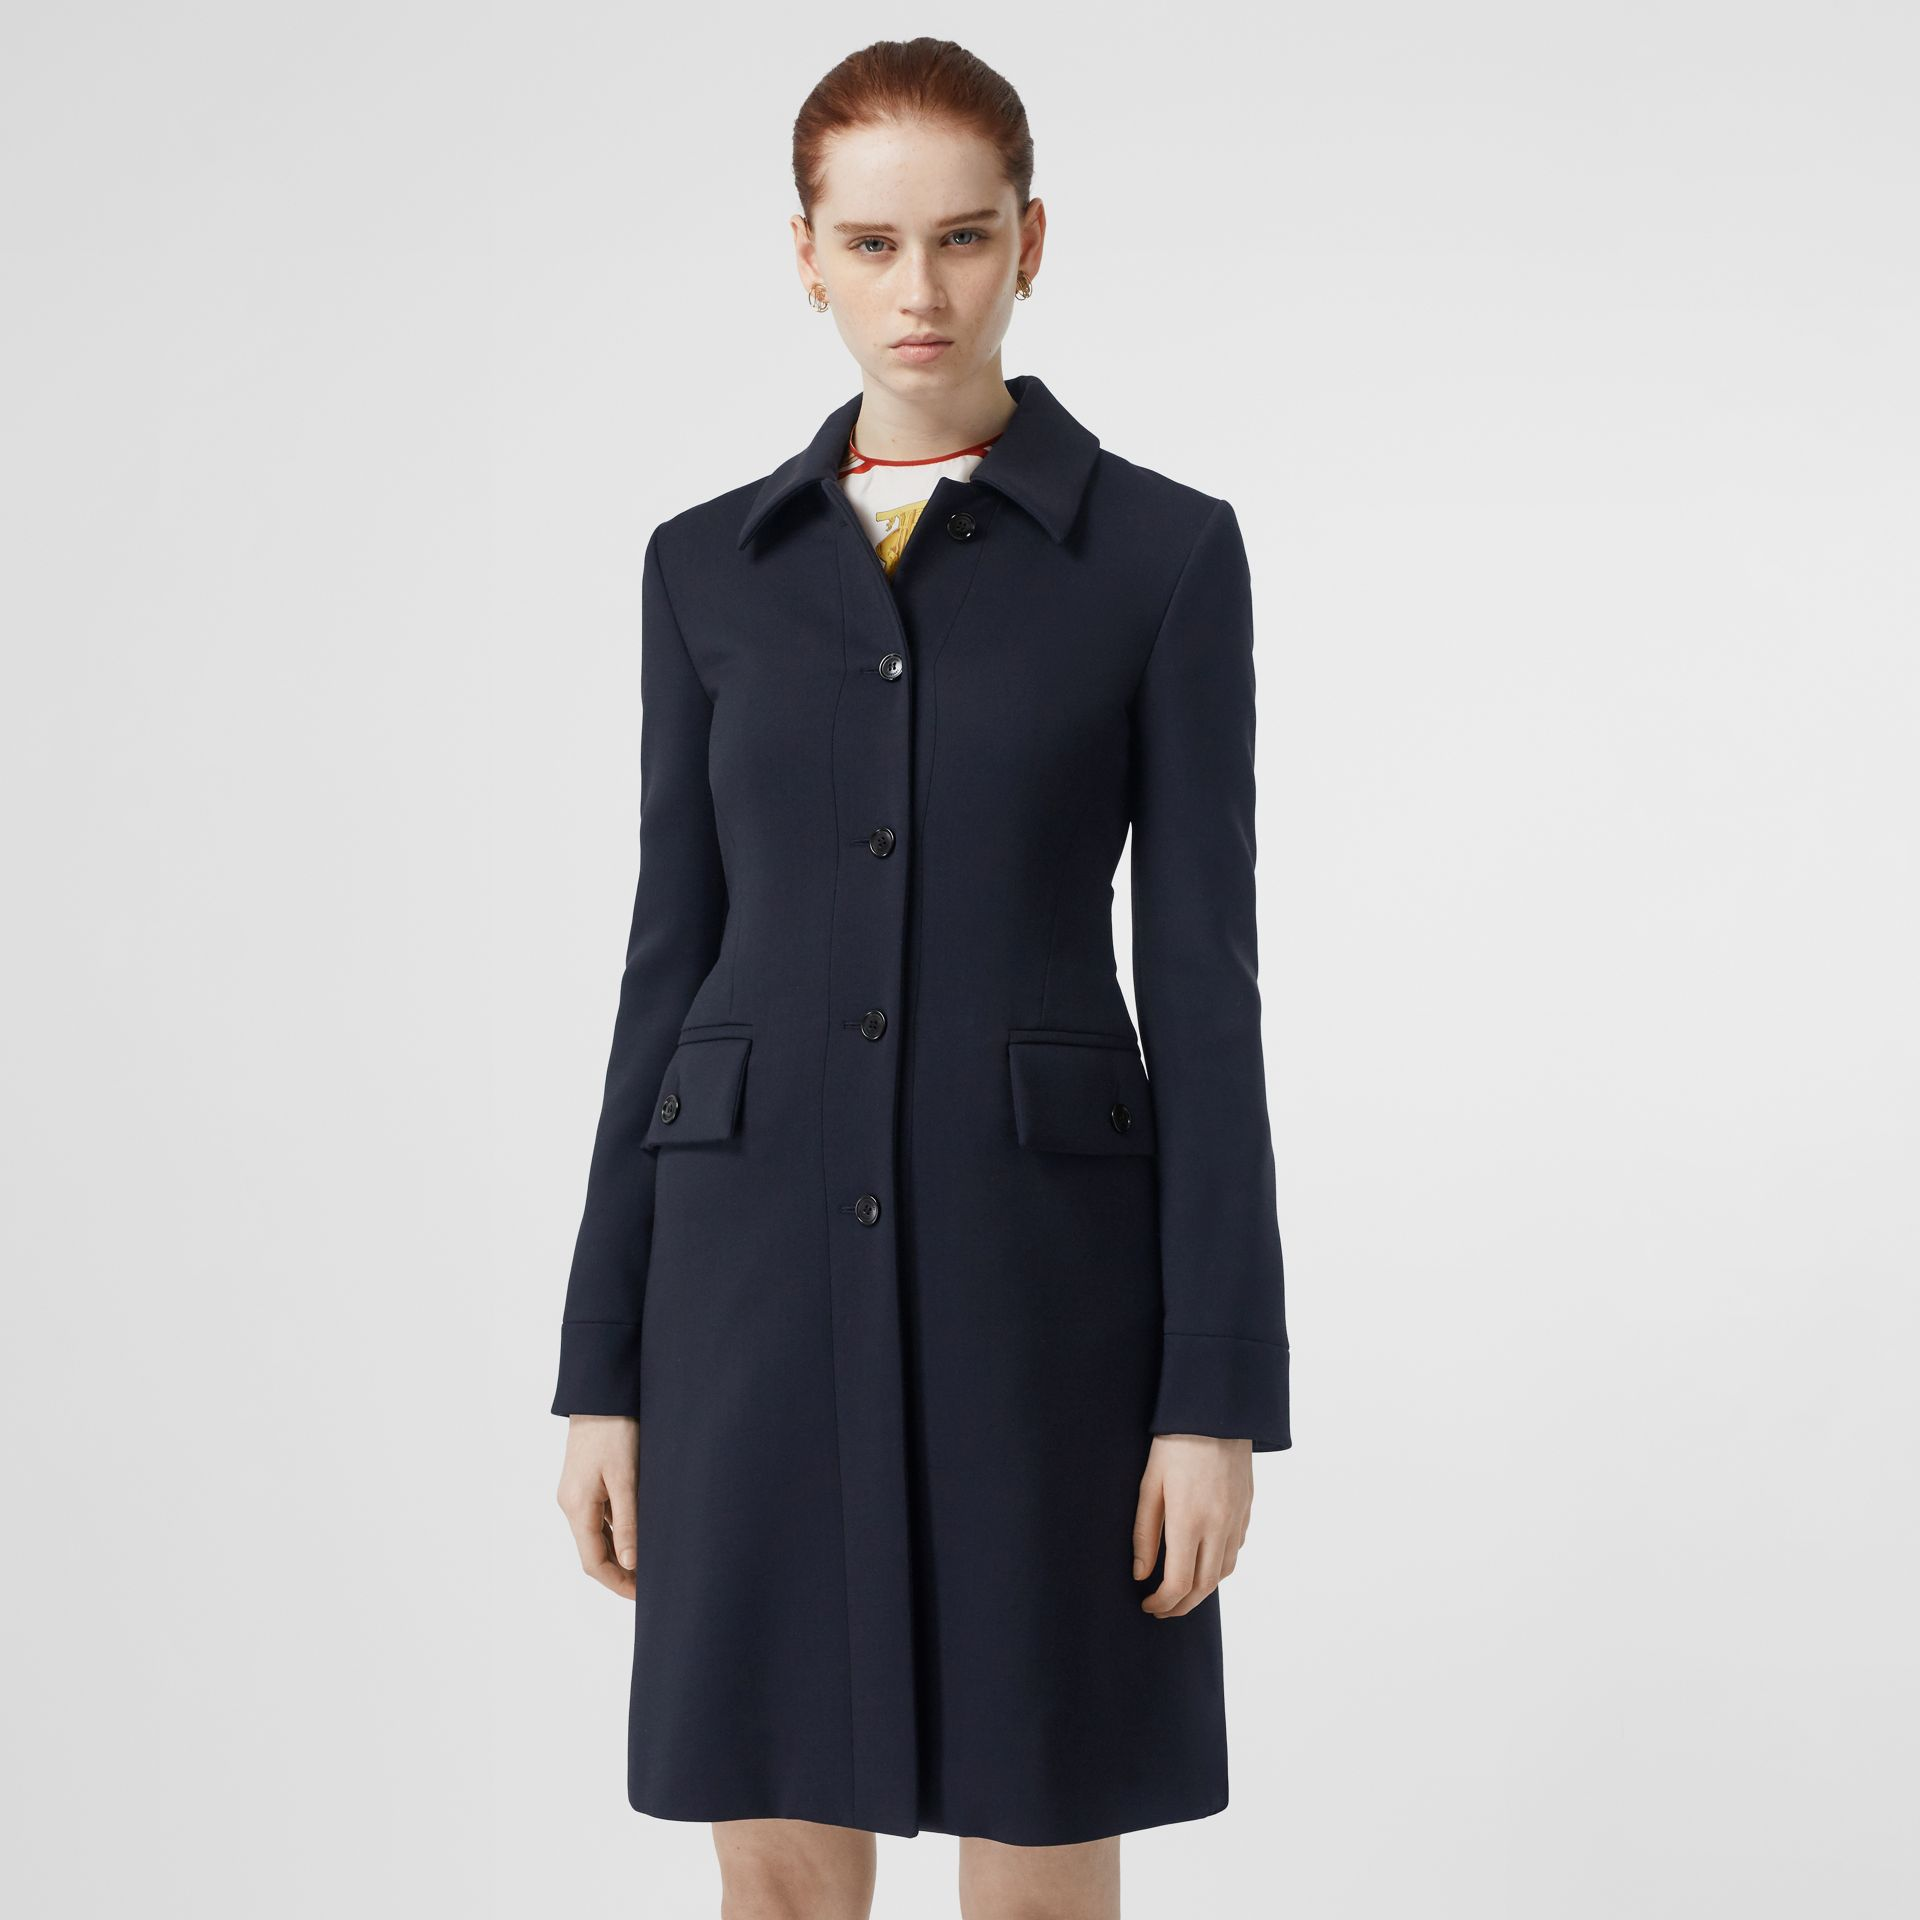 Double-faced Wool Cashmere Blend Coat in Navy - Women | Burberry Canada - gallery image 4